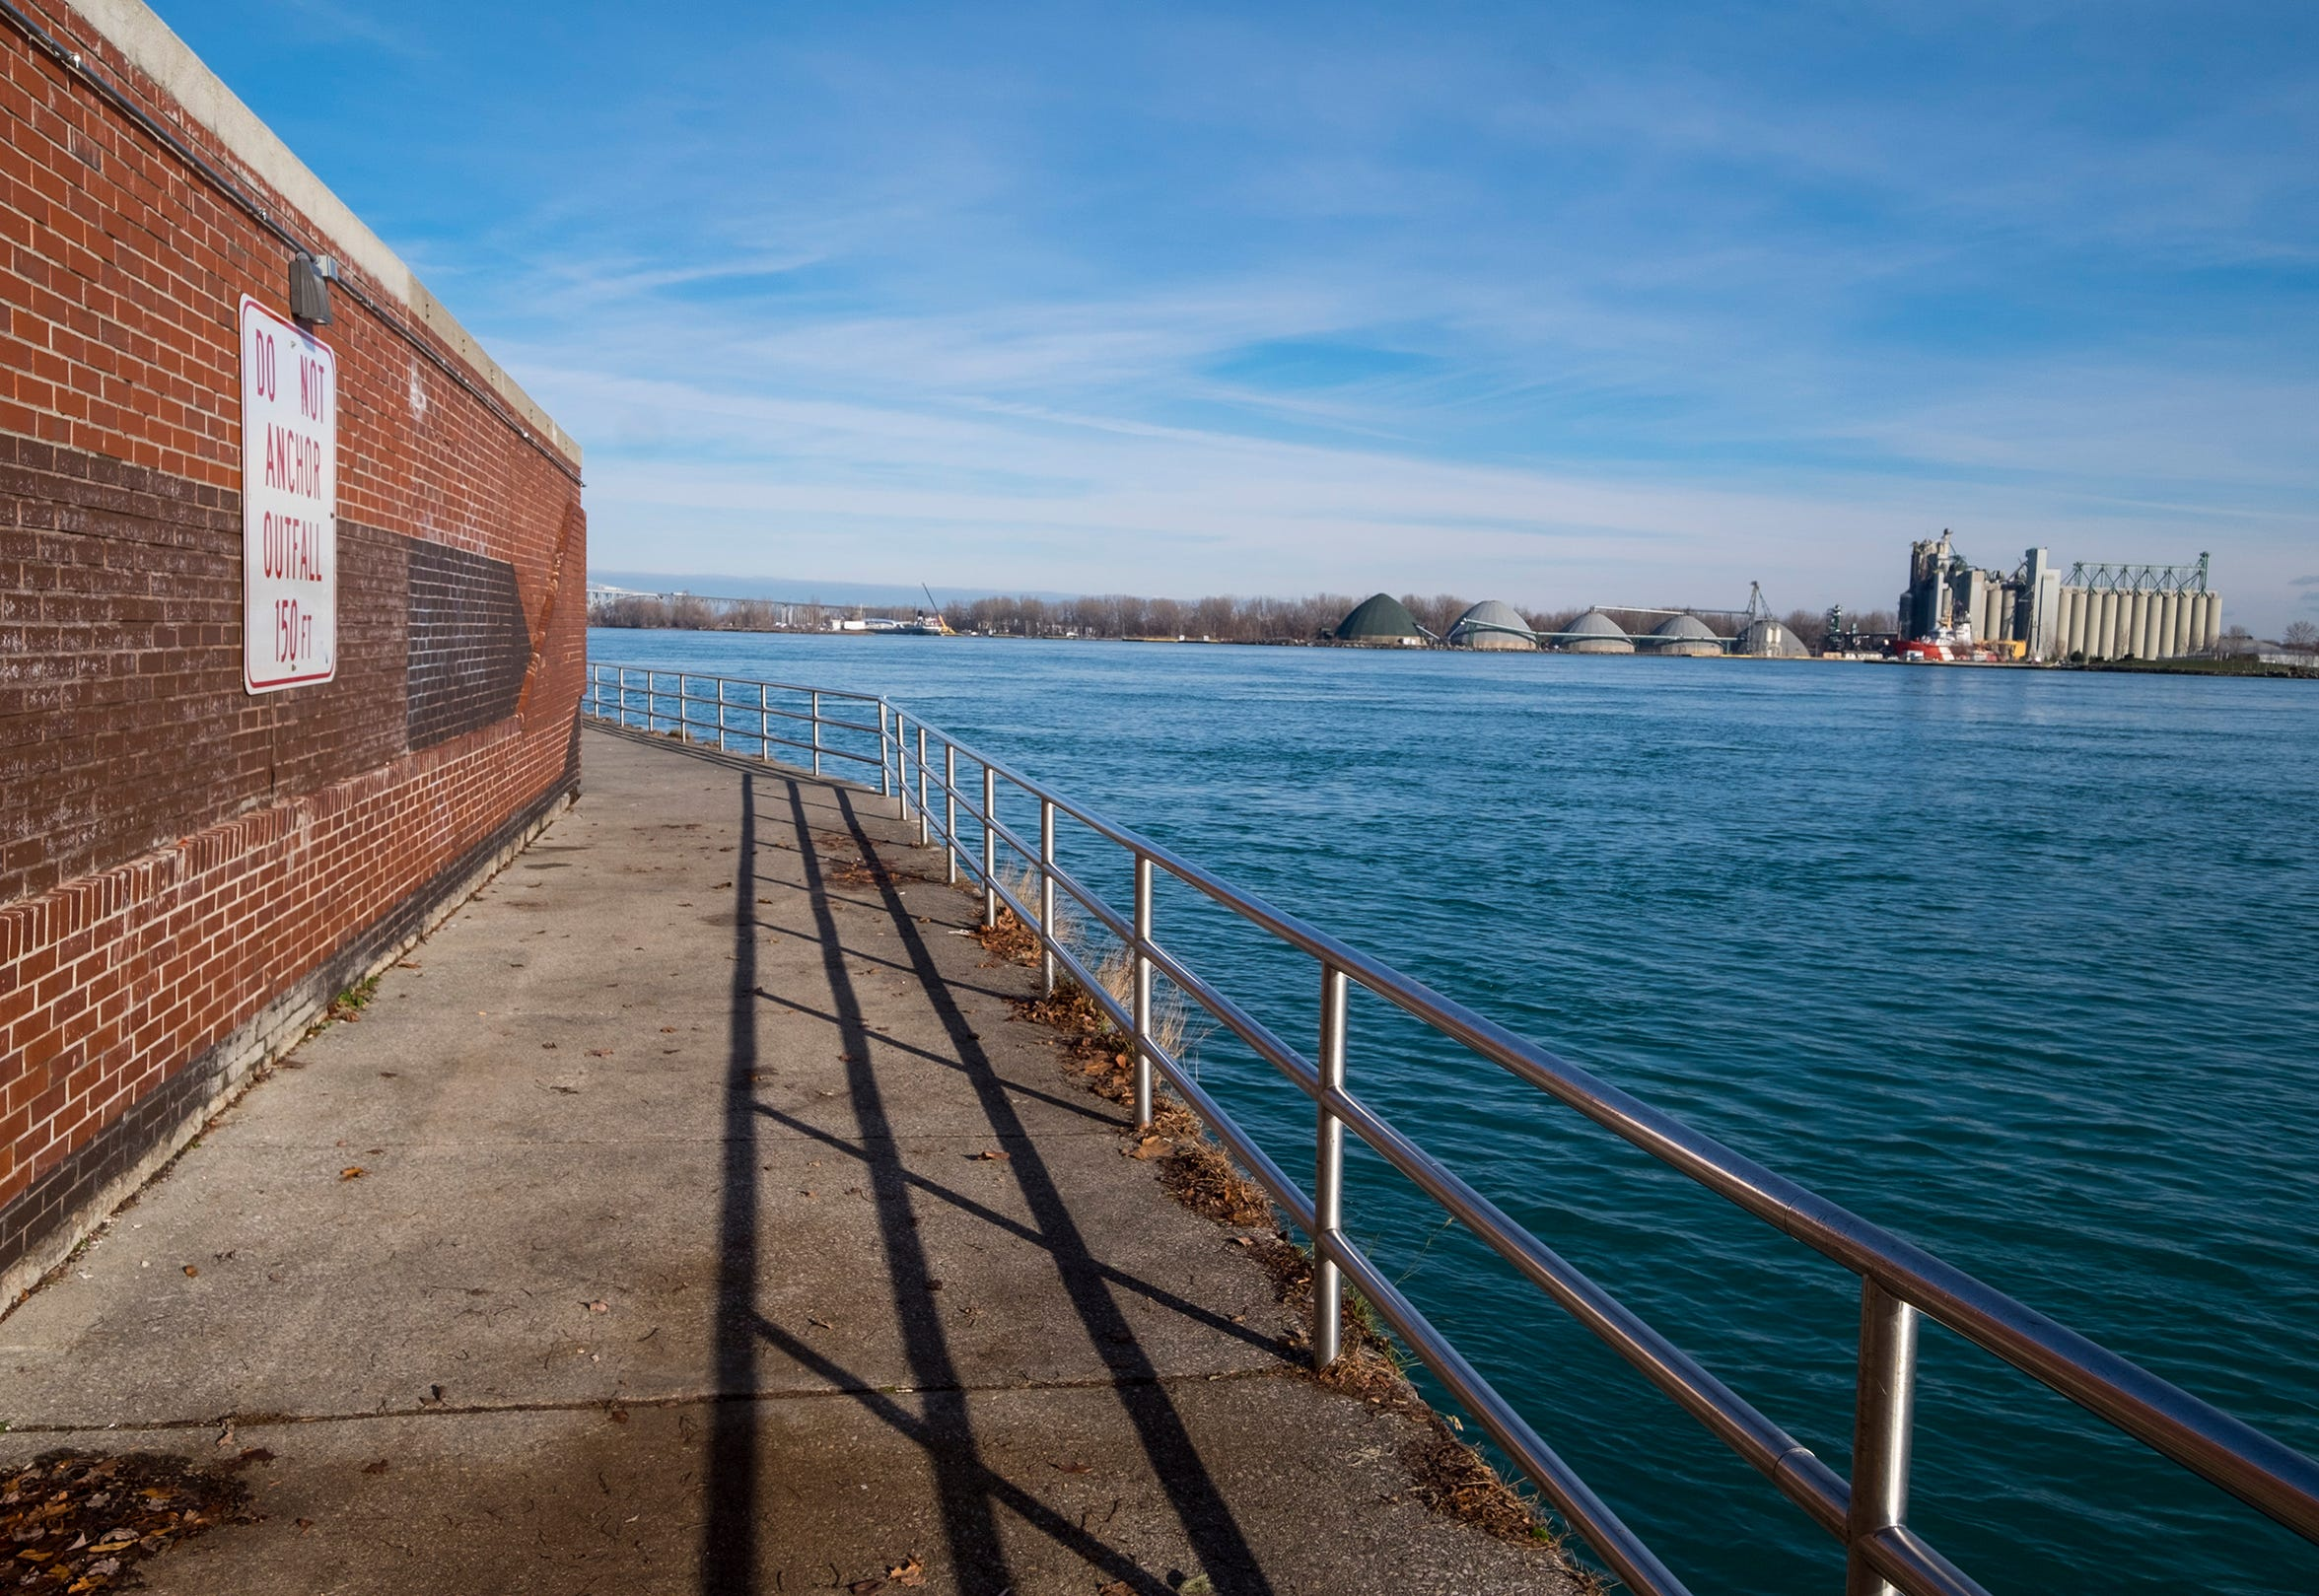 A sign telling boaters not to anchor marks the location of the Port Huron Wastewater Treatment Plant's discharge pipe in the St. Clair River.